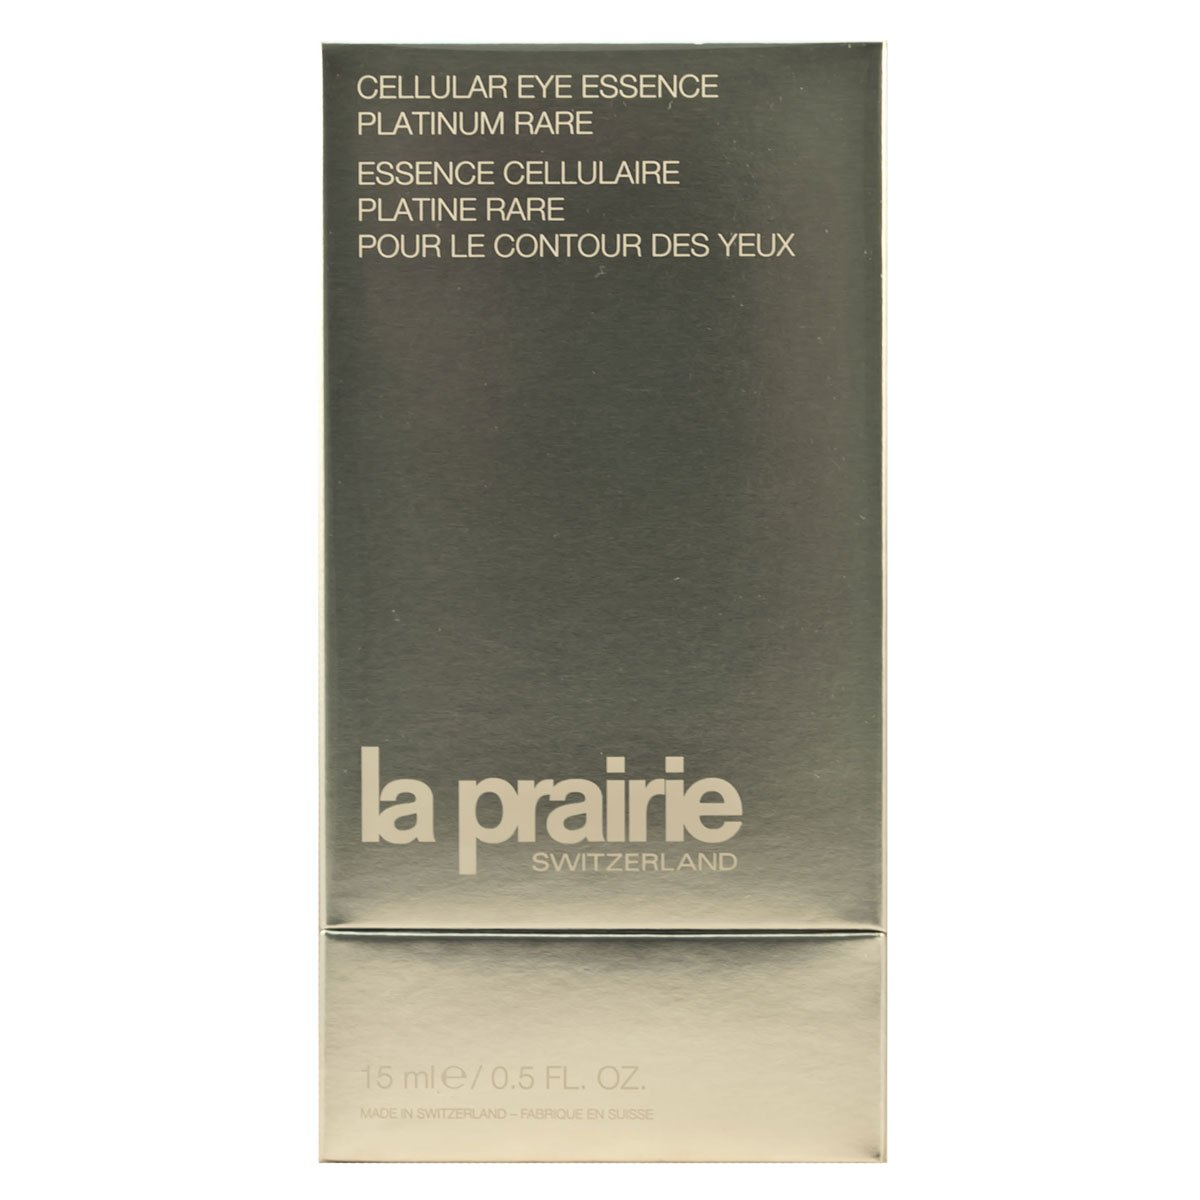 La Prairie Cellular Eye Essence Platinum Rare Serum, 0.5 Ounce, U-SC-3815 7611773038379 LPR303837_-15ml